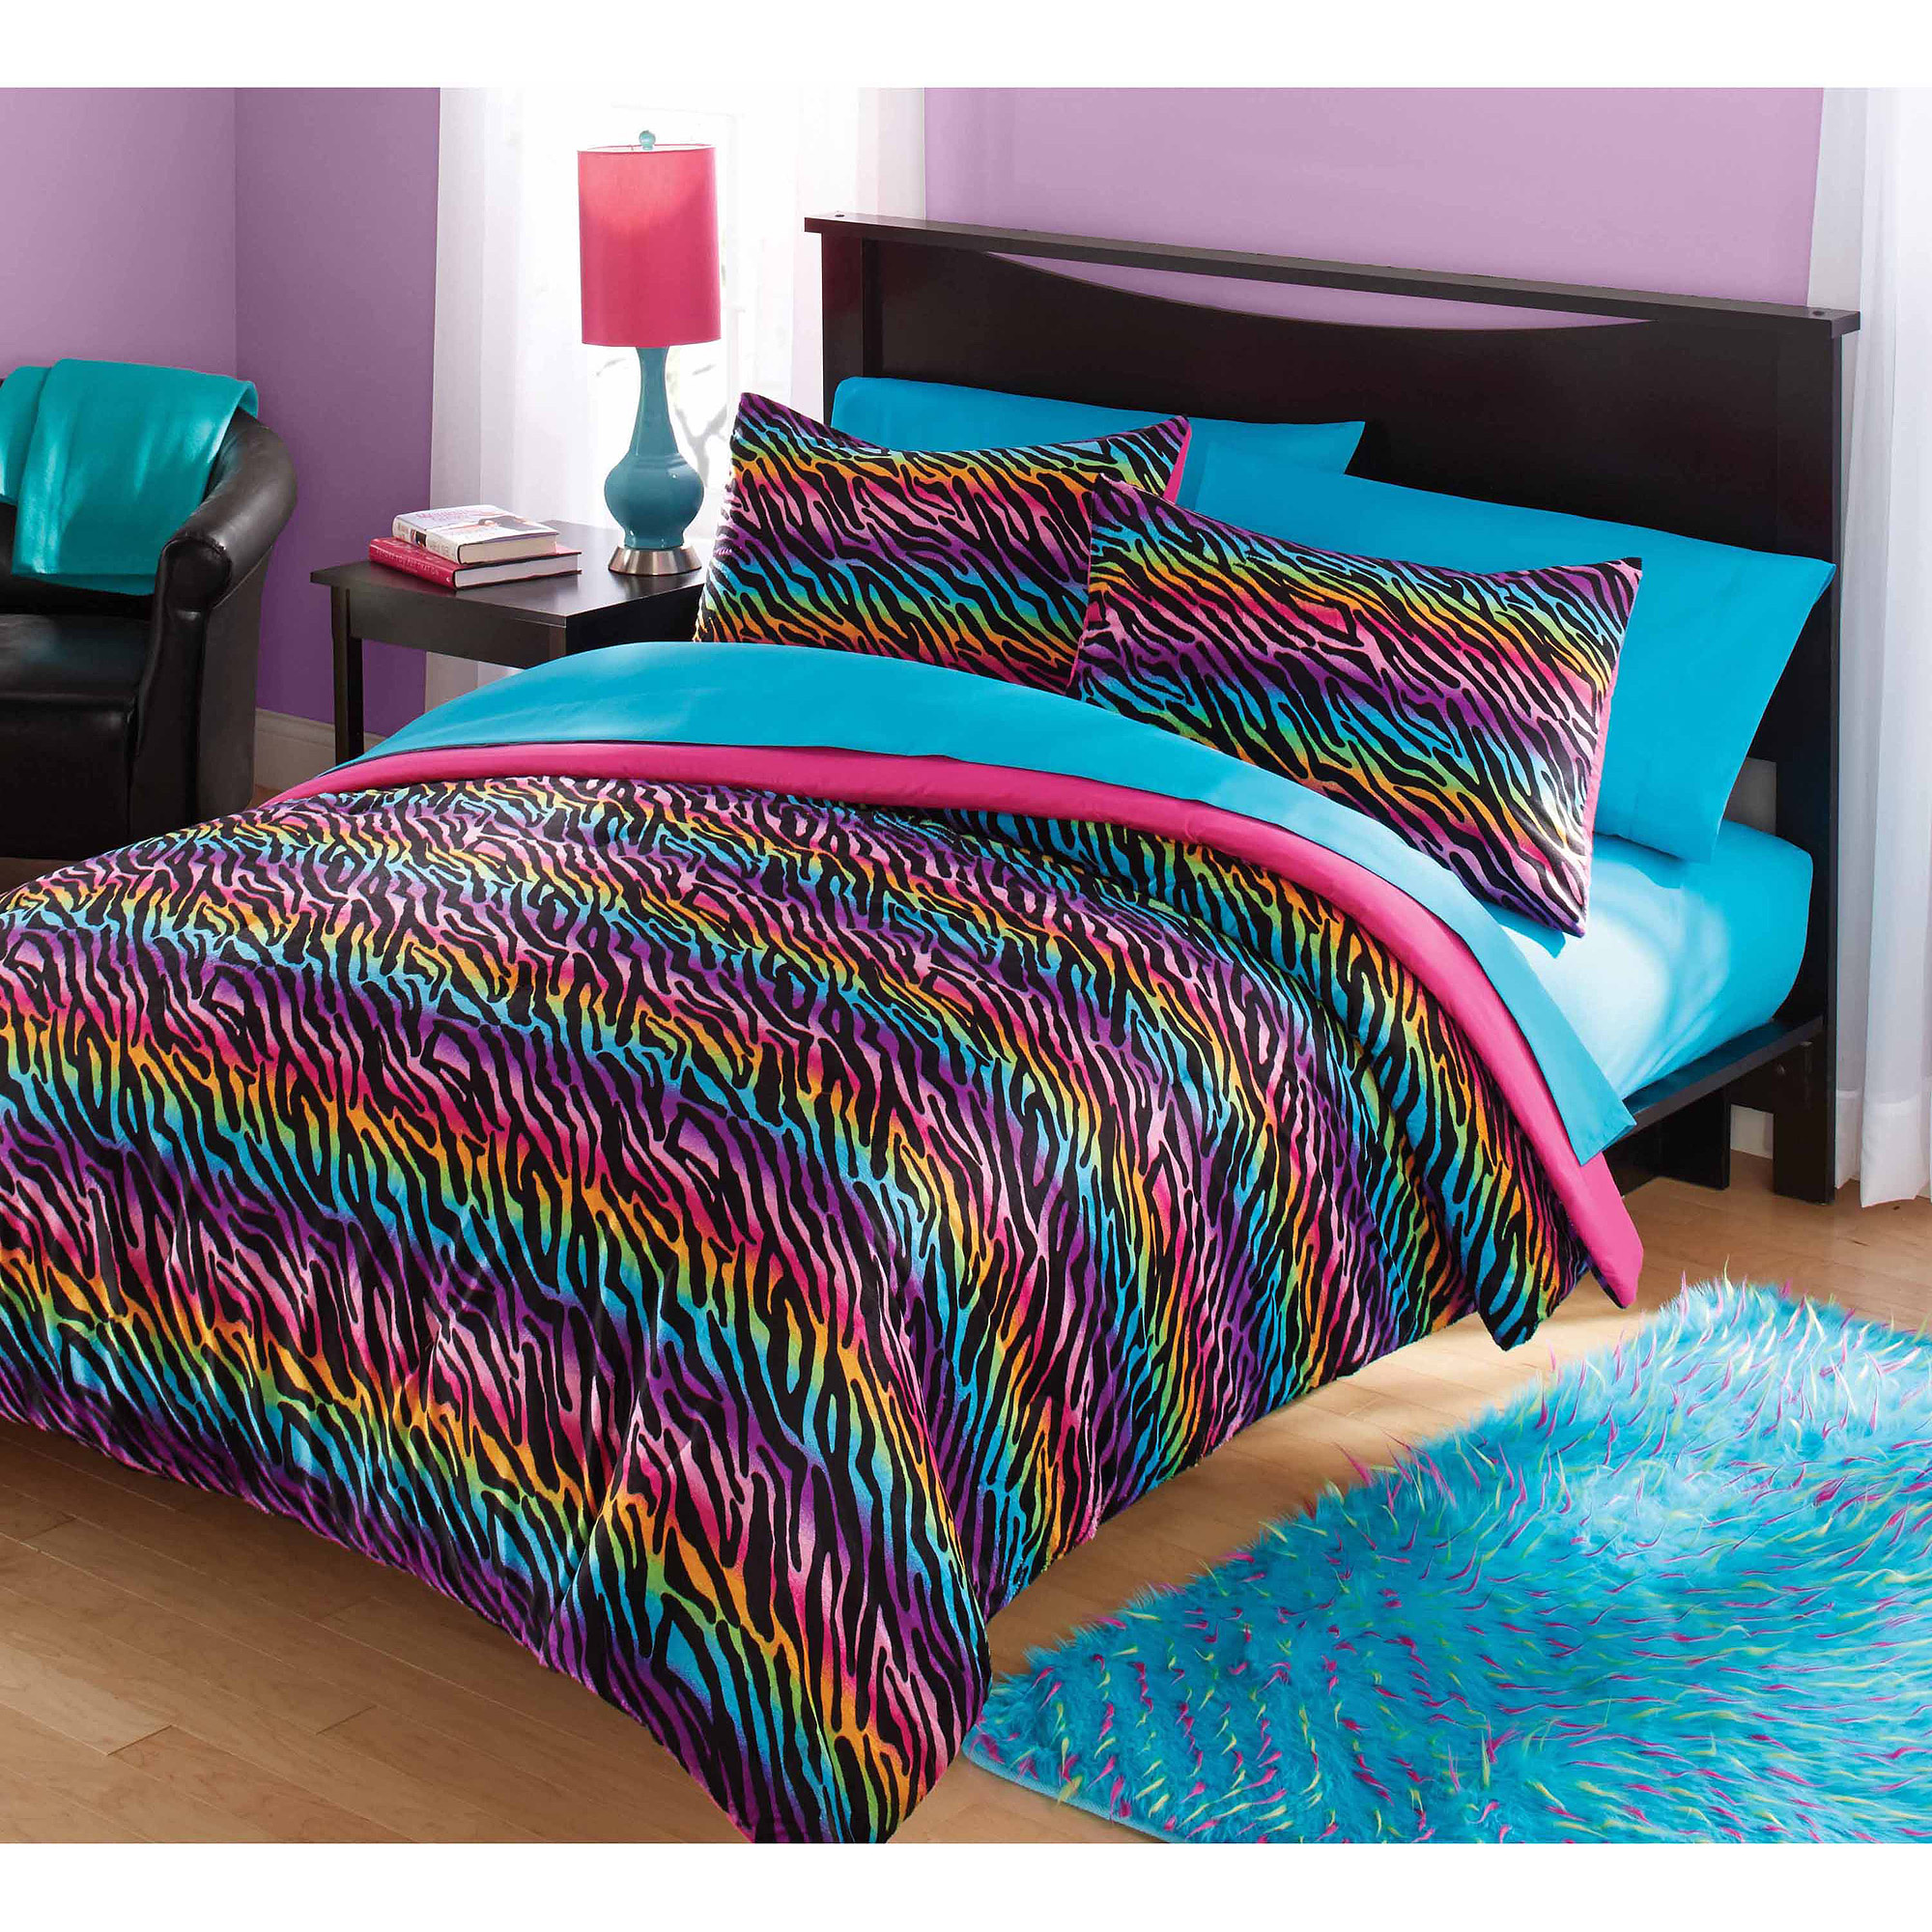 Zebra Sheets Twin